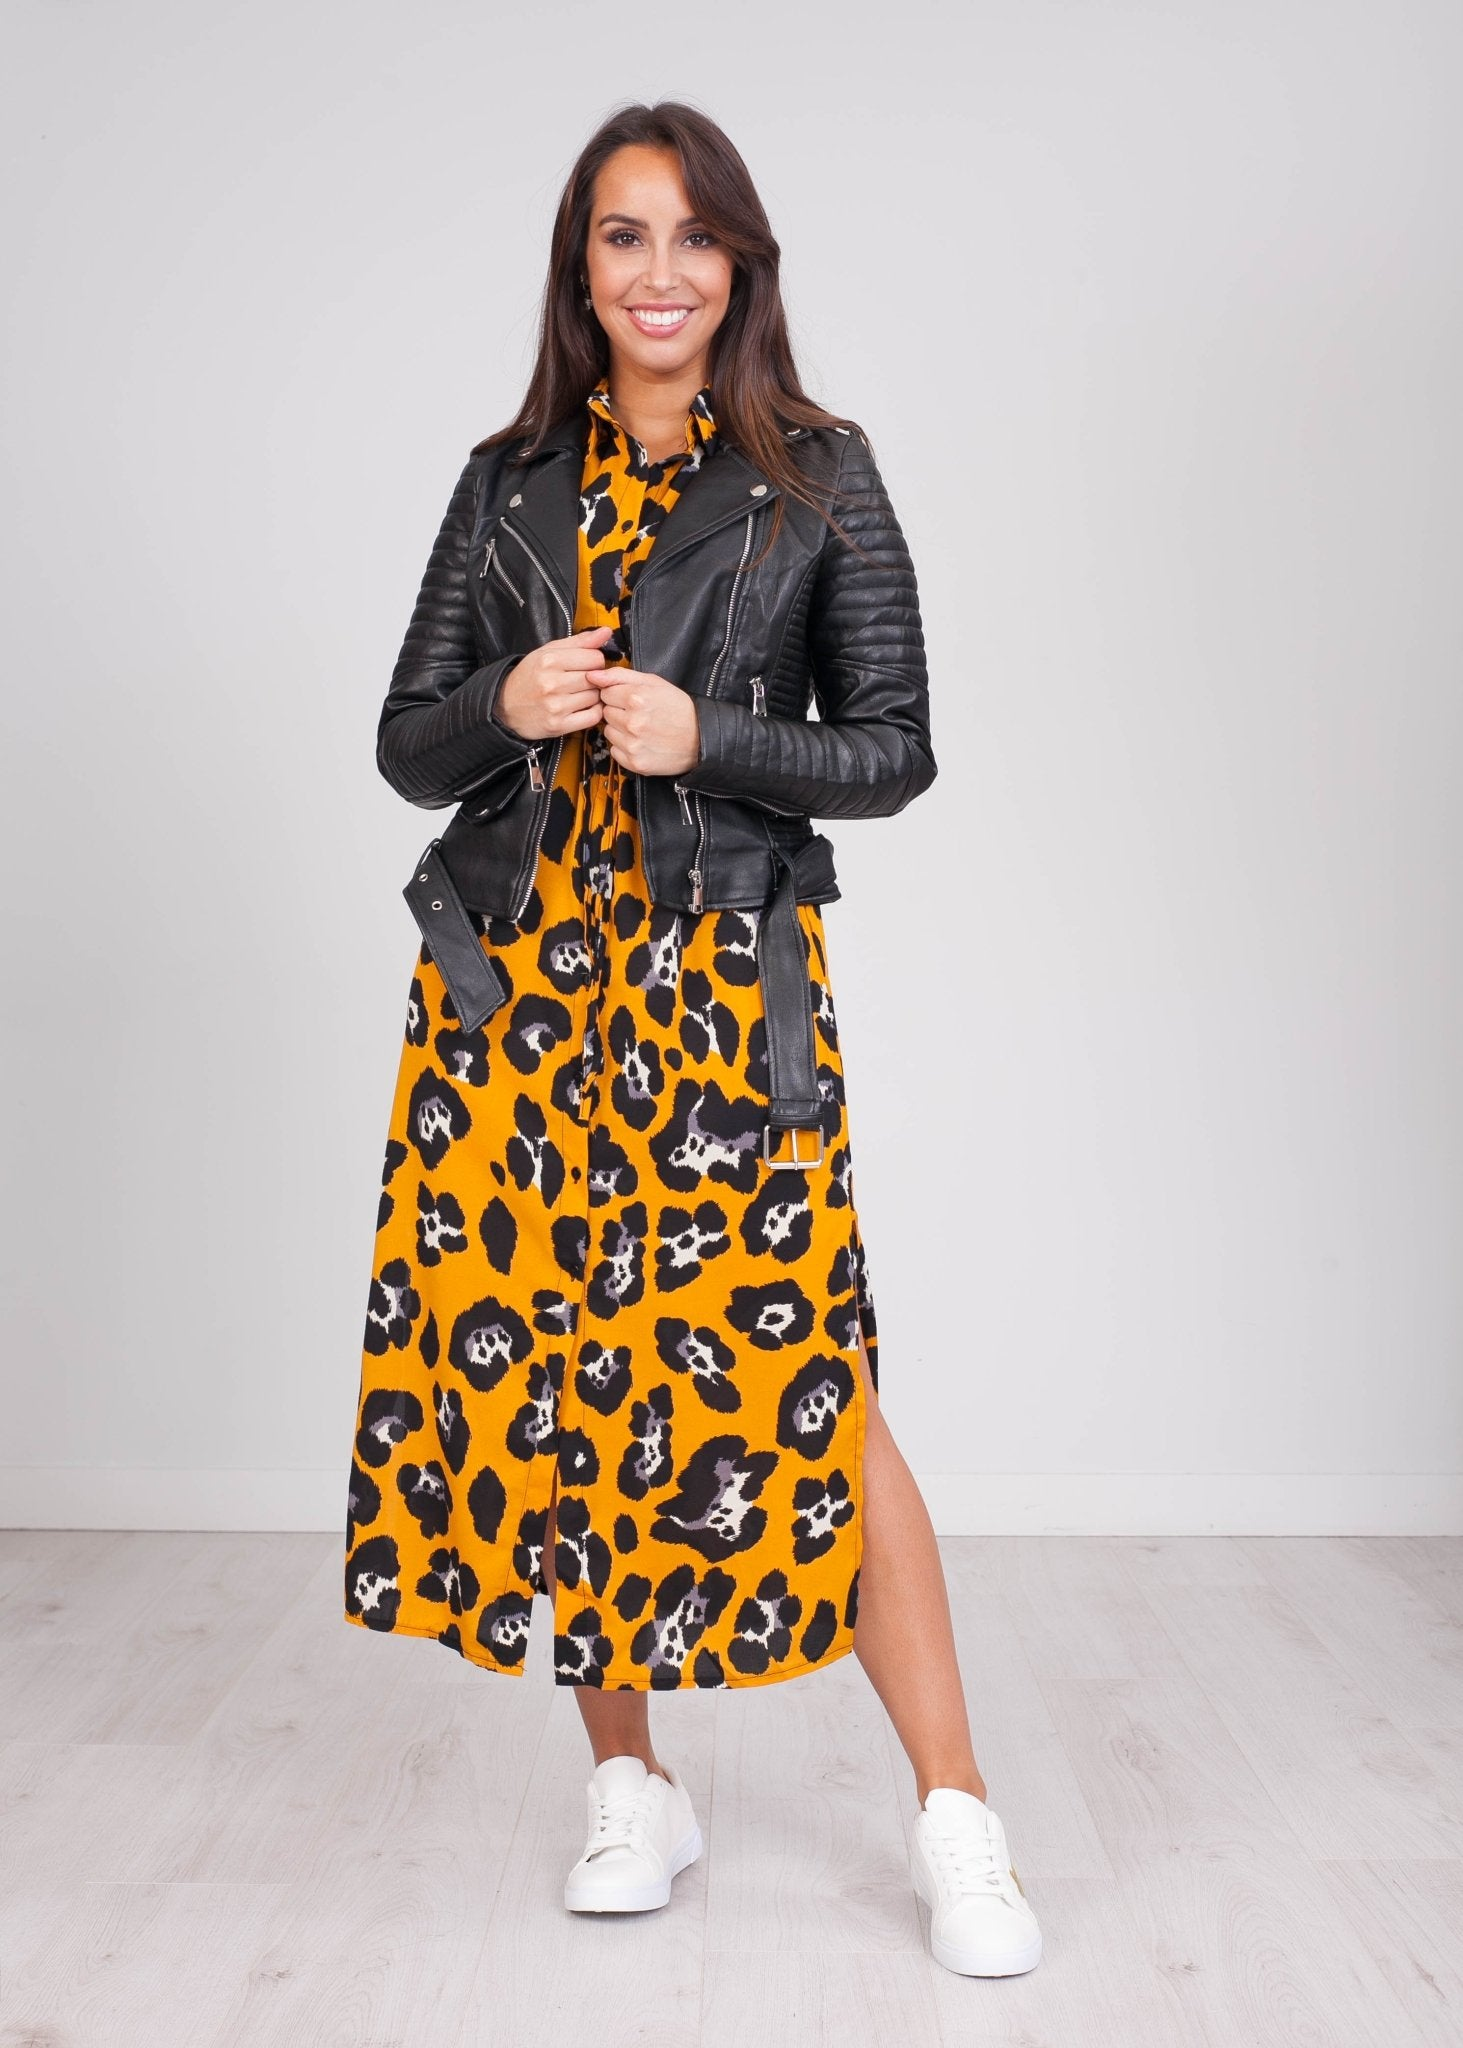 Emilia Mustard Animal Print Dress - The Walk in Wardrobe